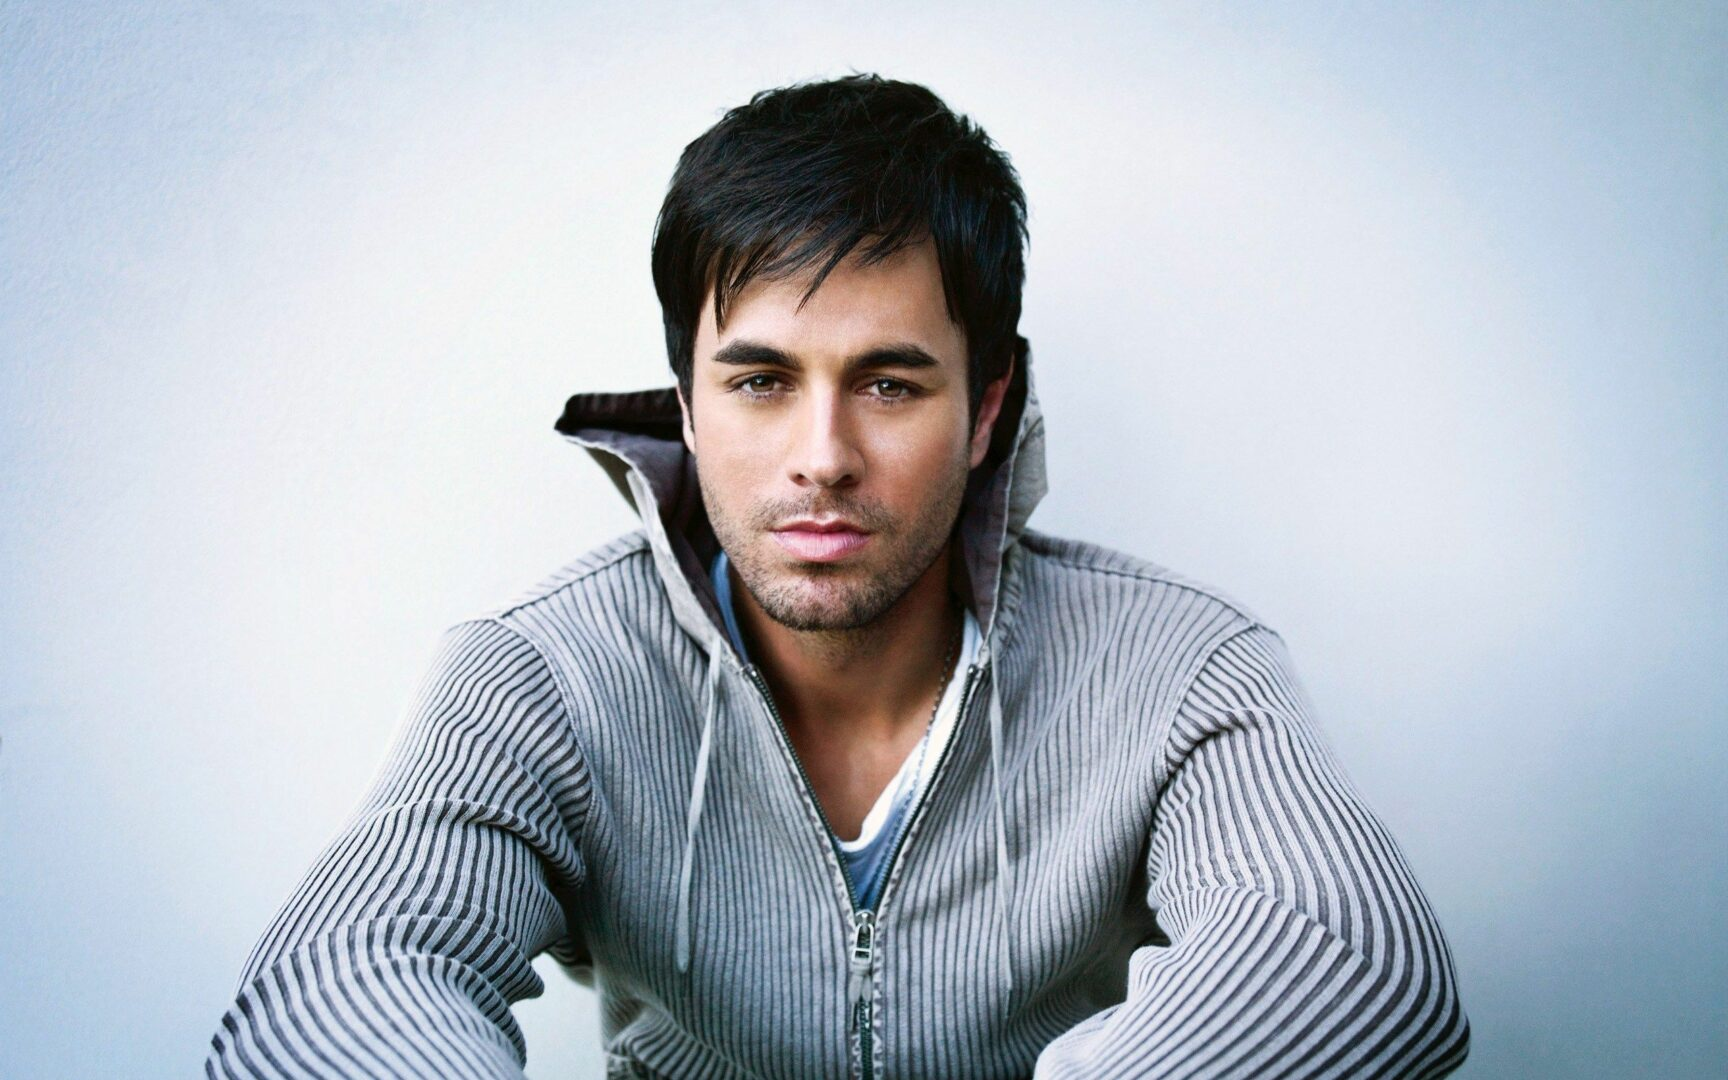 Enrique Iglesias Announces North American Tour with Pitbull